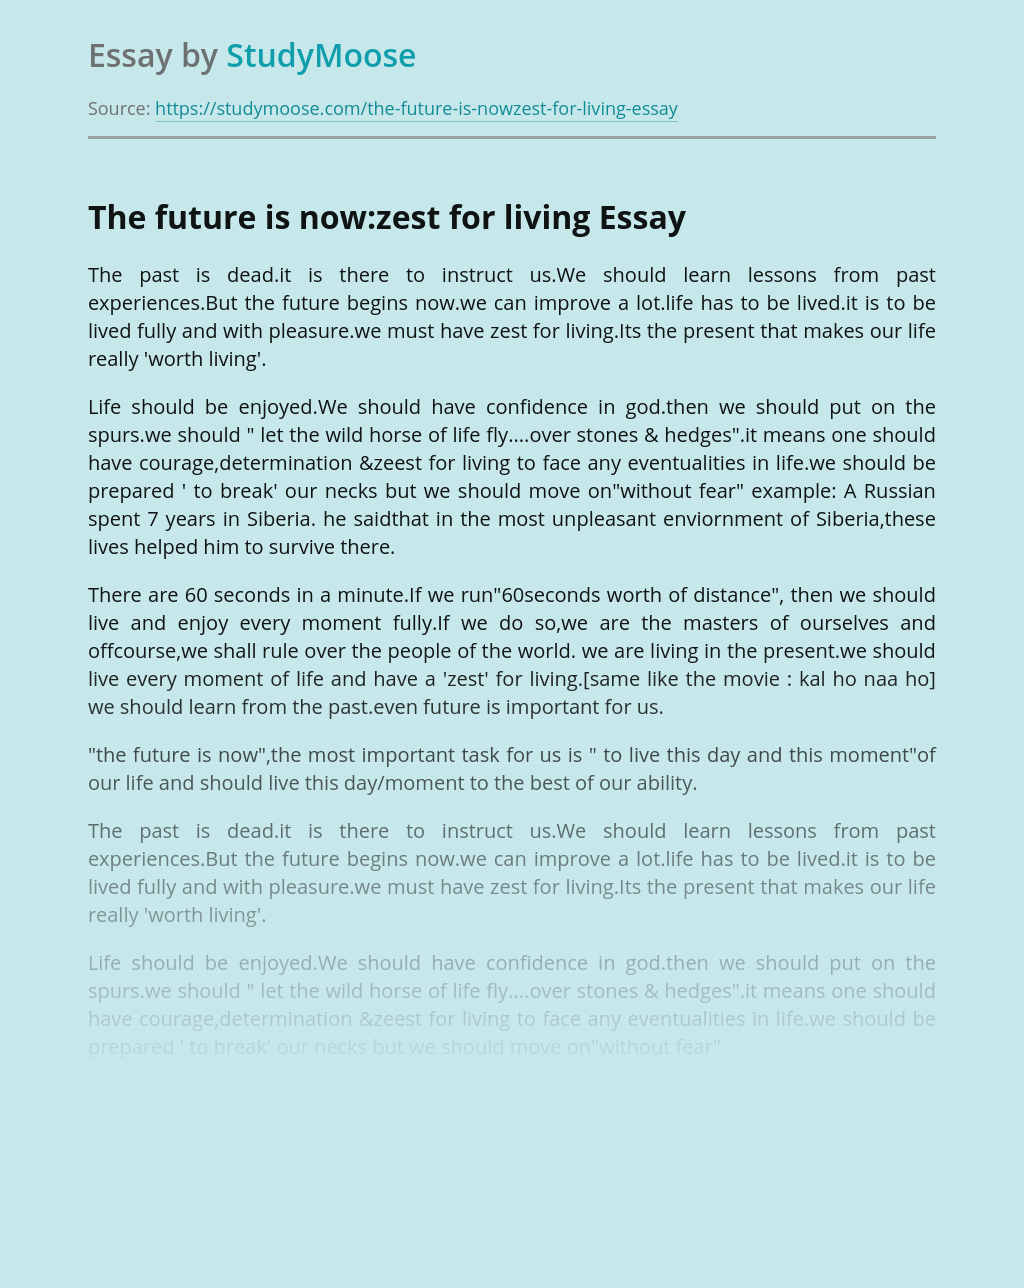 The future is now:zest for living